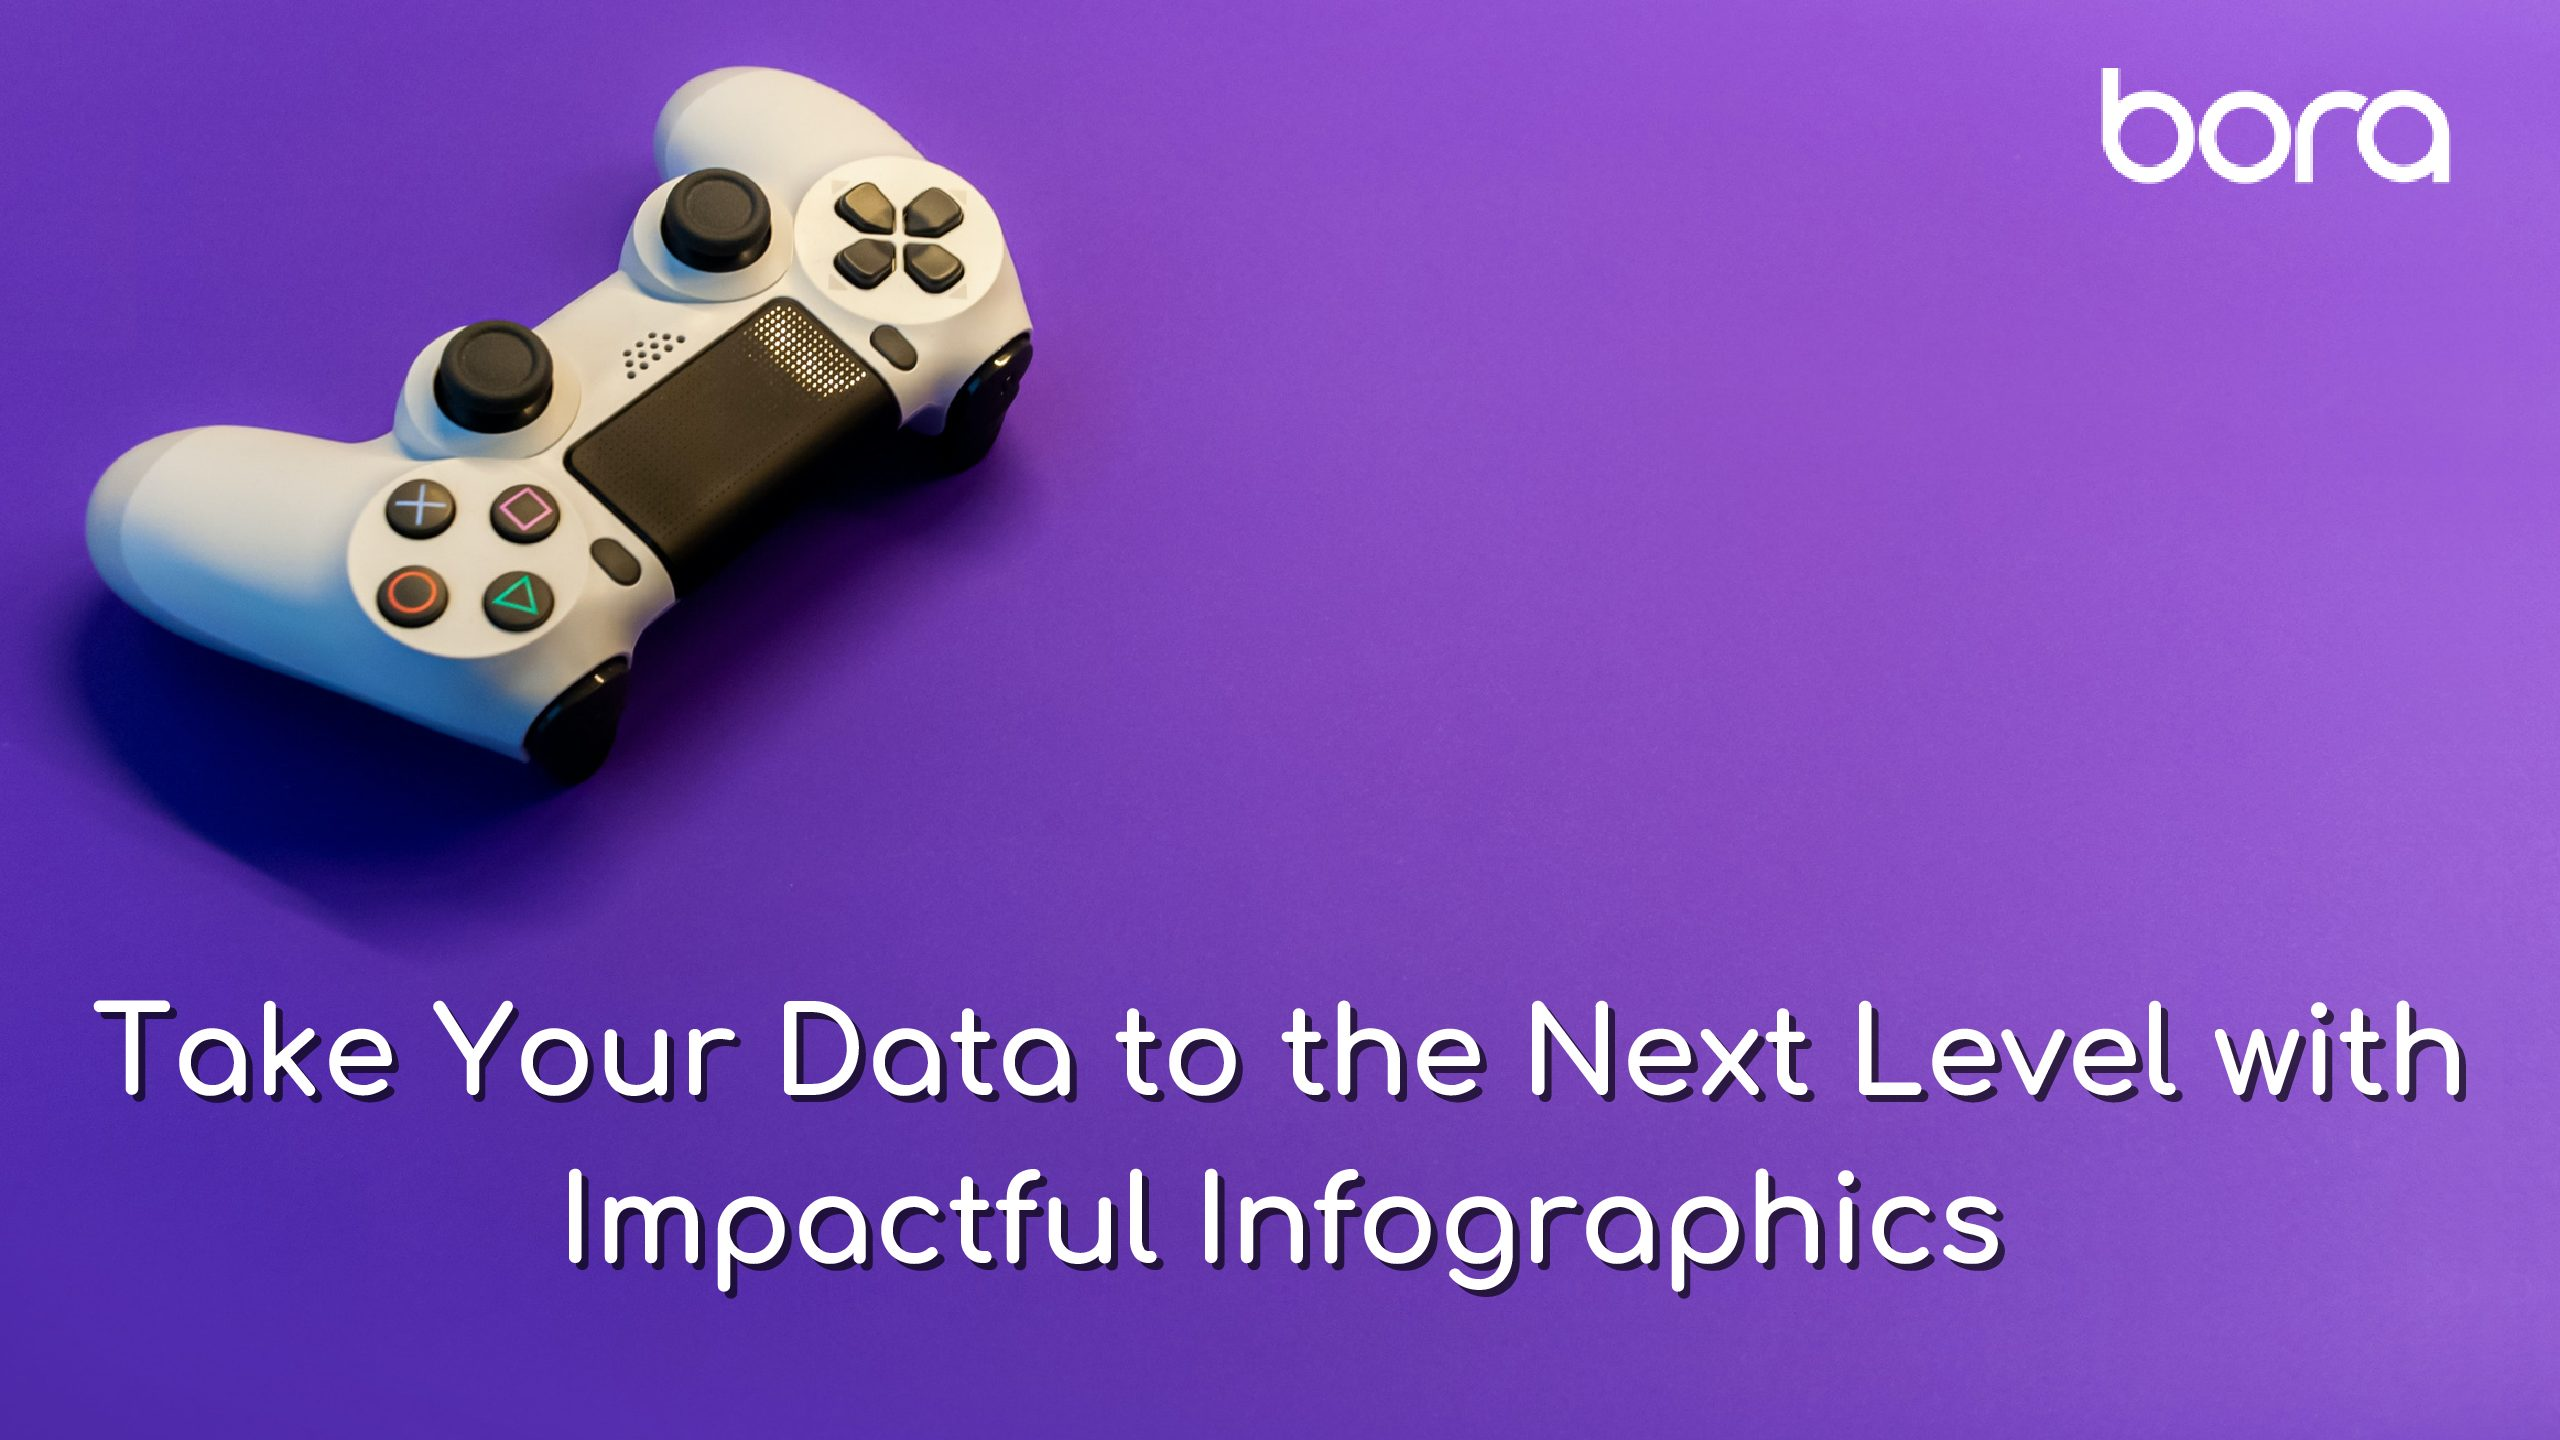 Take Your Data to the Next Level with Impactful Infographics